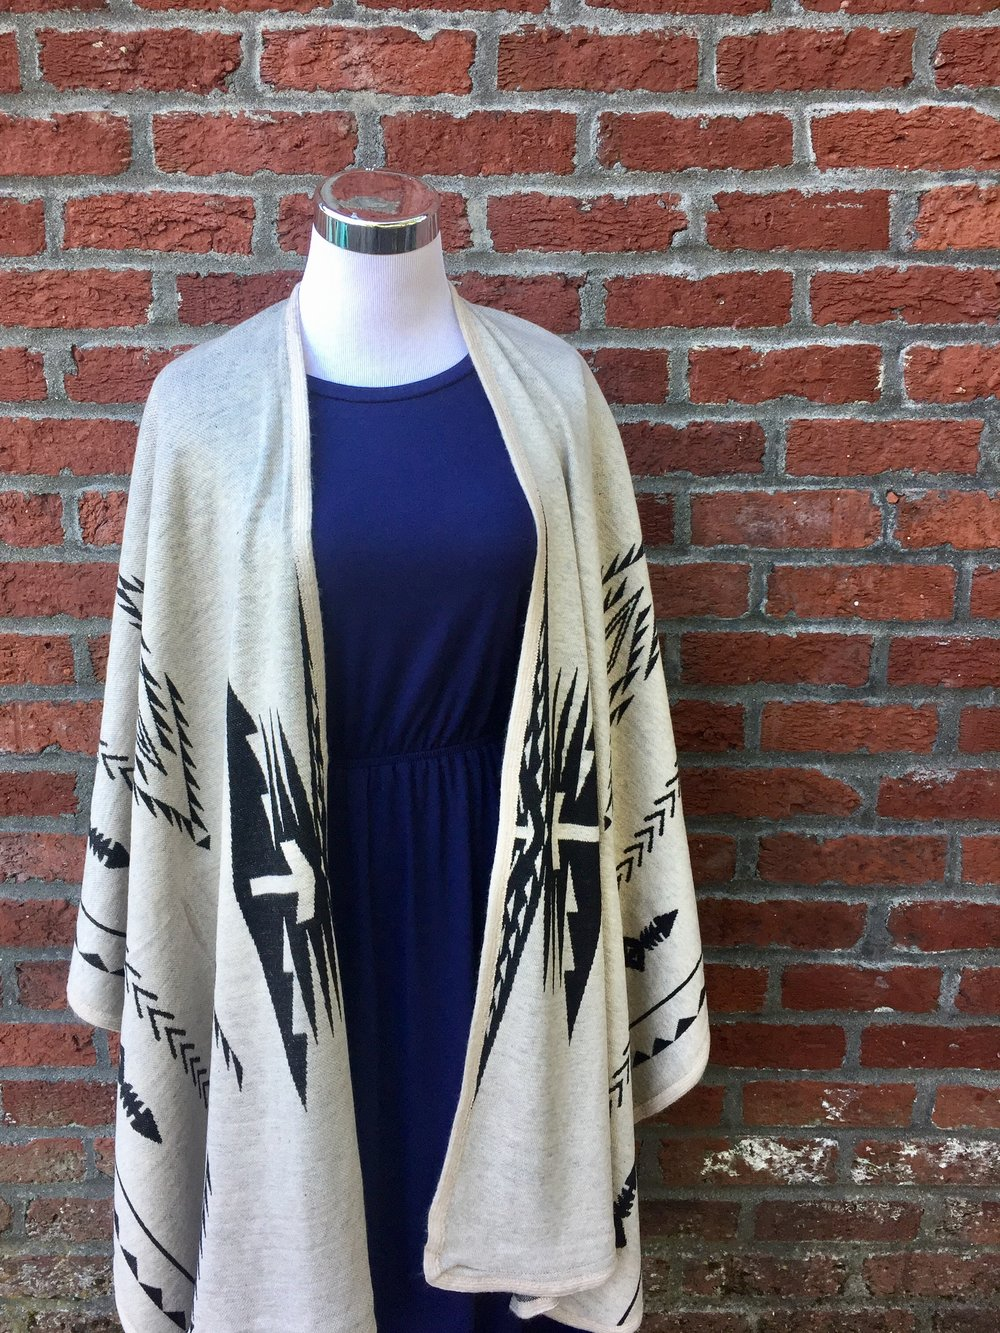 Reb + J Navy Dress ($35) with Shawl ($32)